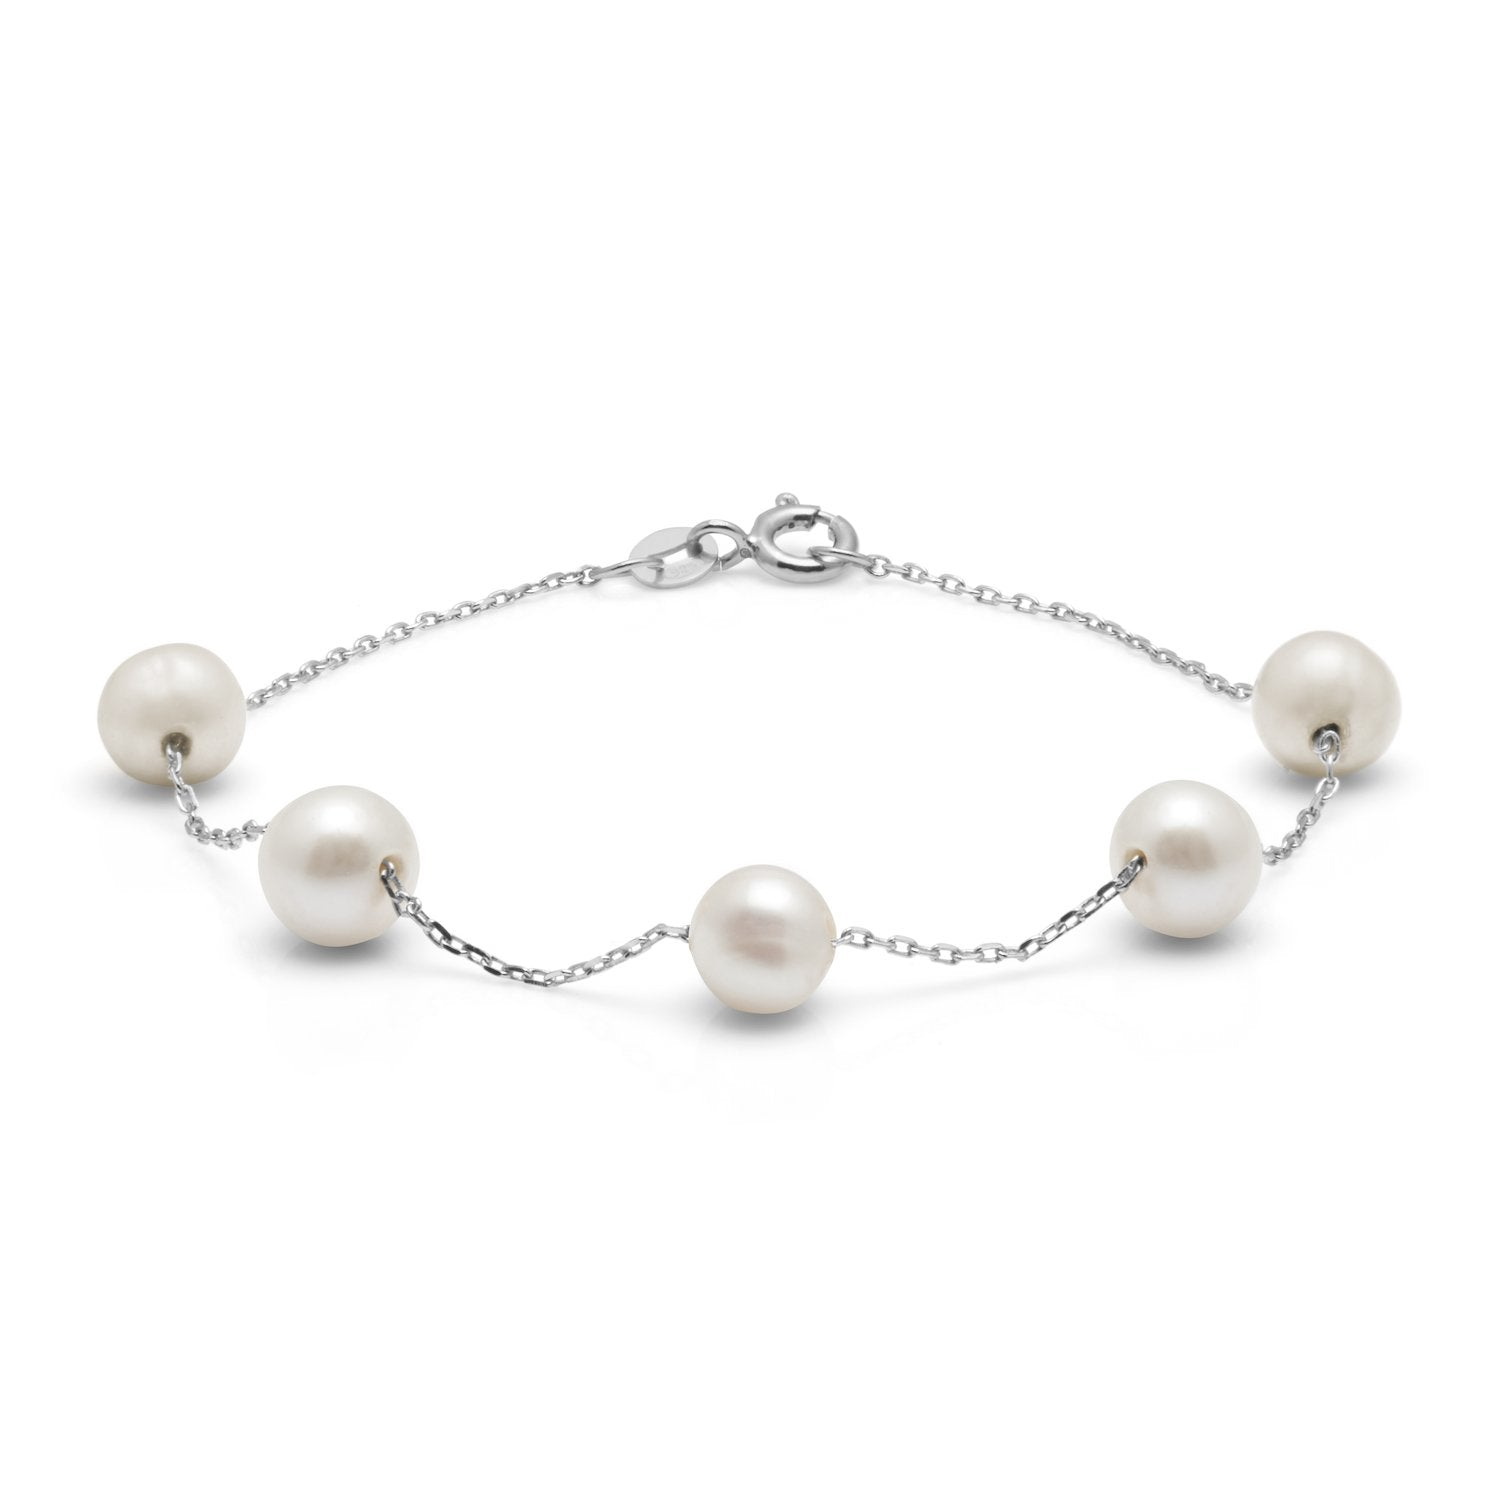 Kyoto Pearl Classic Freshwater Pearl & 925 Silver Chain Bracelet